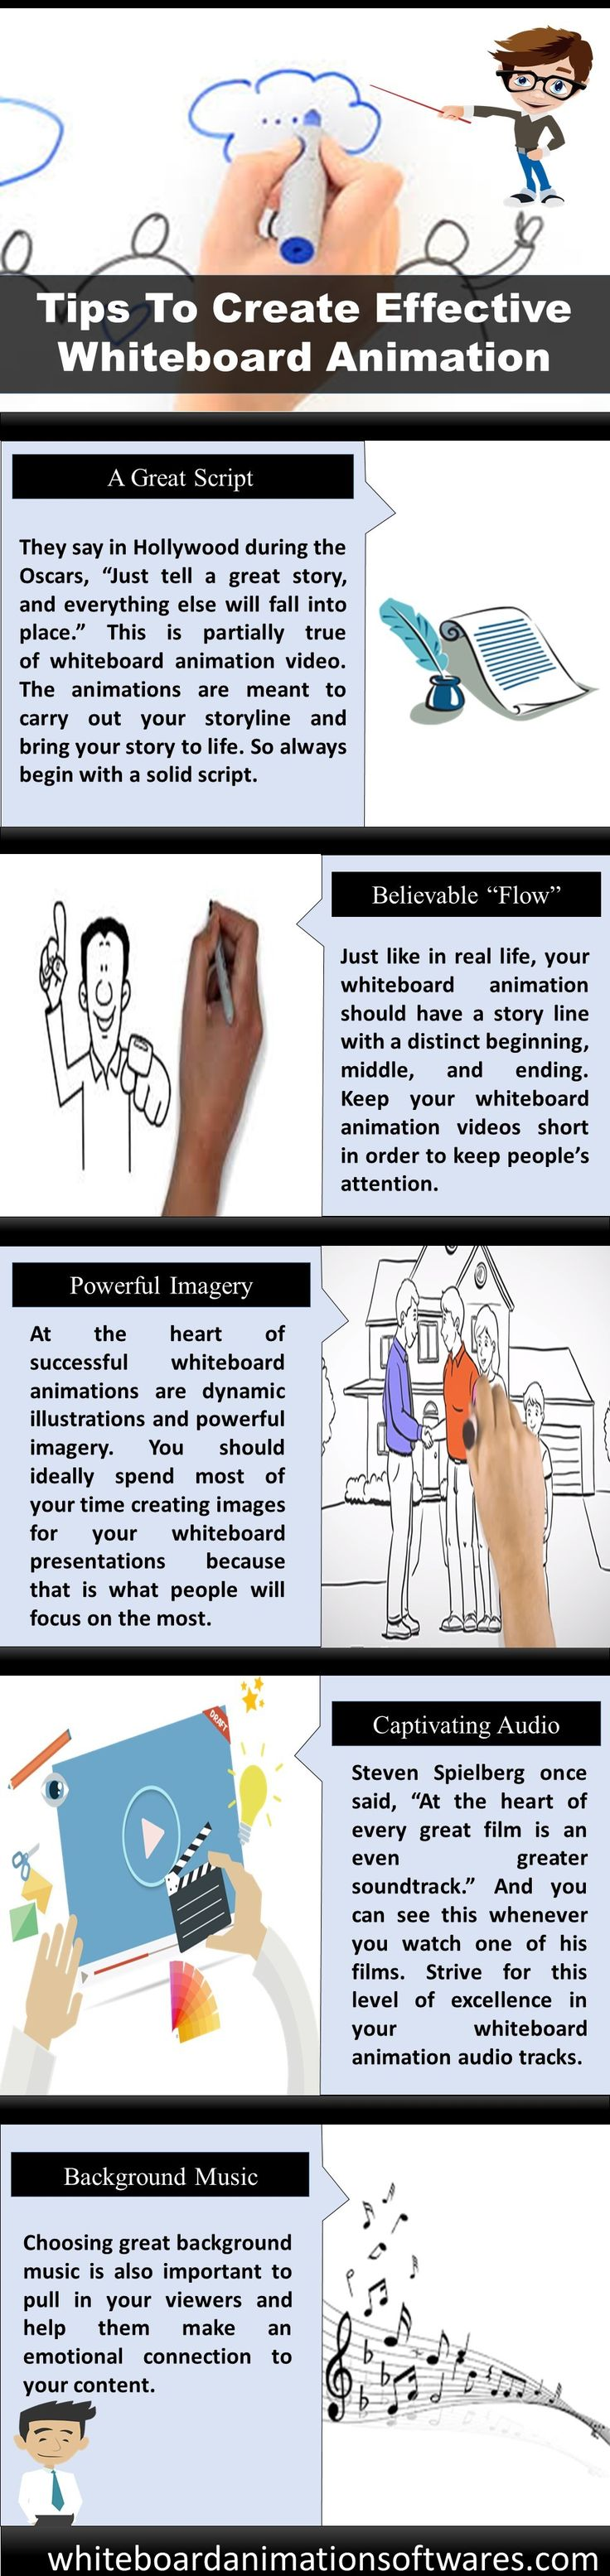 In this infographic, I have explained the guide to create innovative and unique whiteboard animation. Use this tips and make presentation/video. You can use famous whiteboard software videoscribe too.